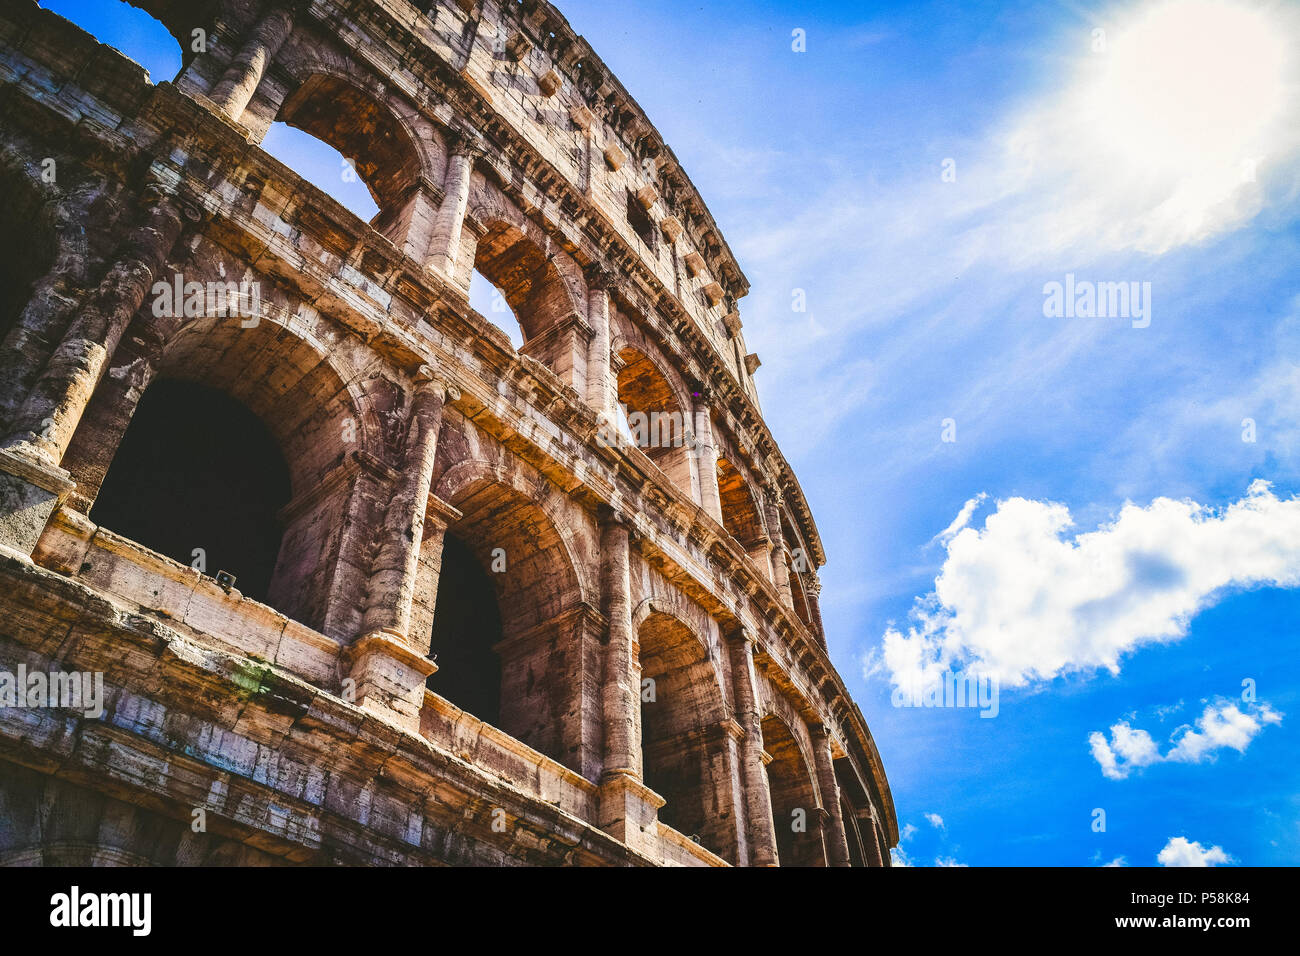 Amazing view of the Colosseum in Rome Stock Photo